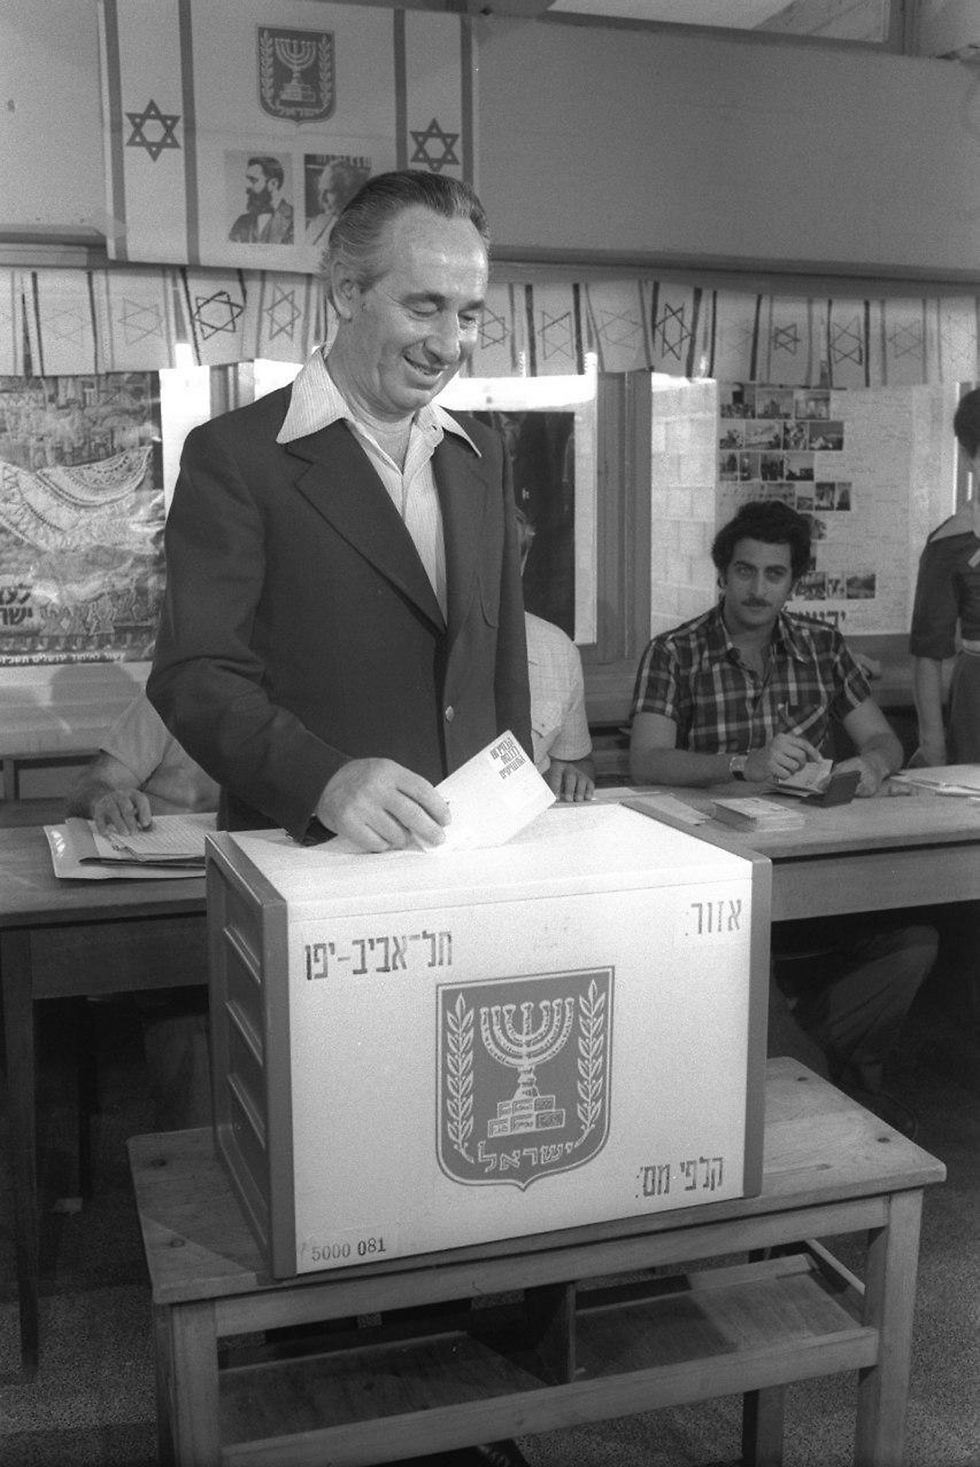 Peres voting in the 1977 elections, which was to be the first time the Labor party lost (Photo: Sahar Yakub)